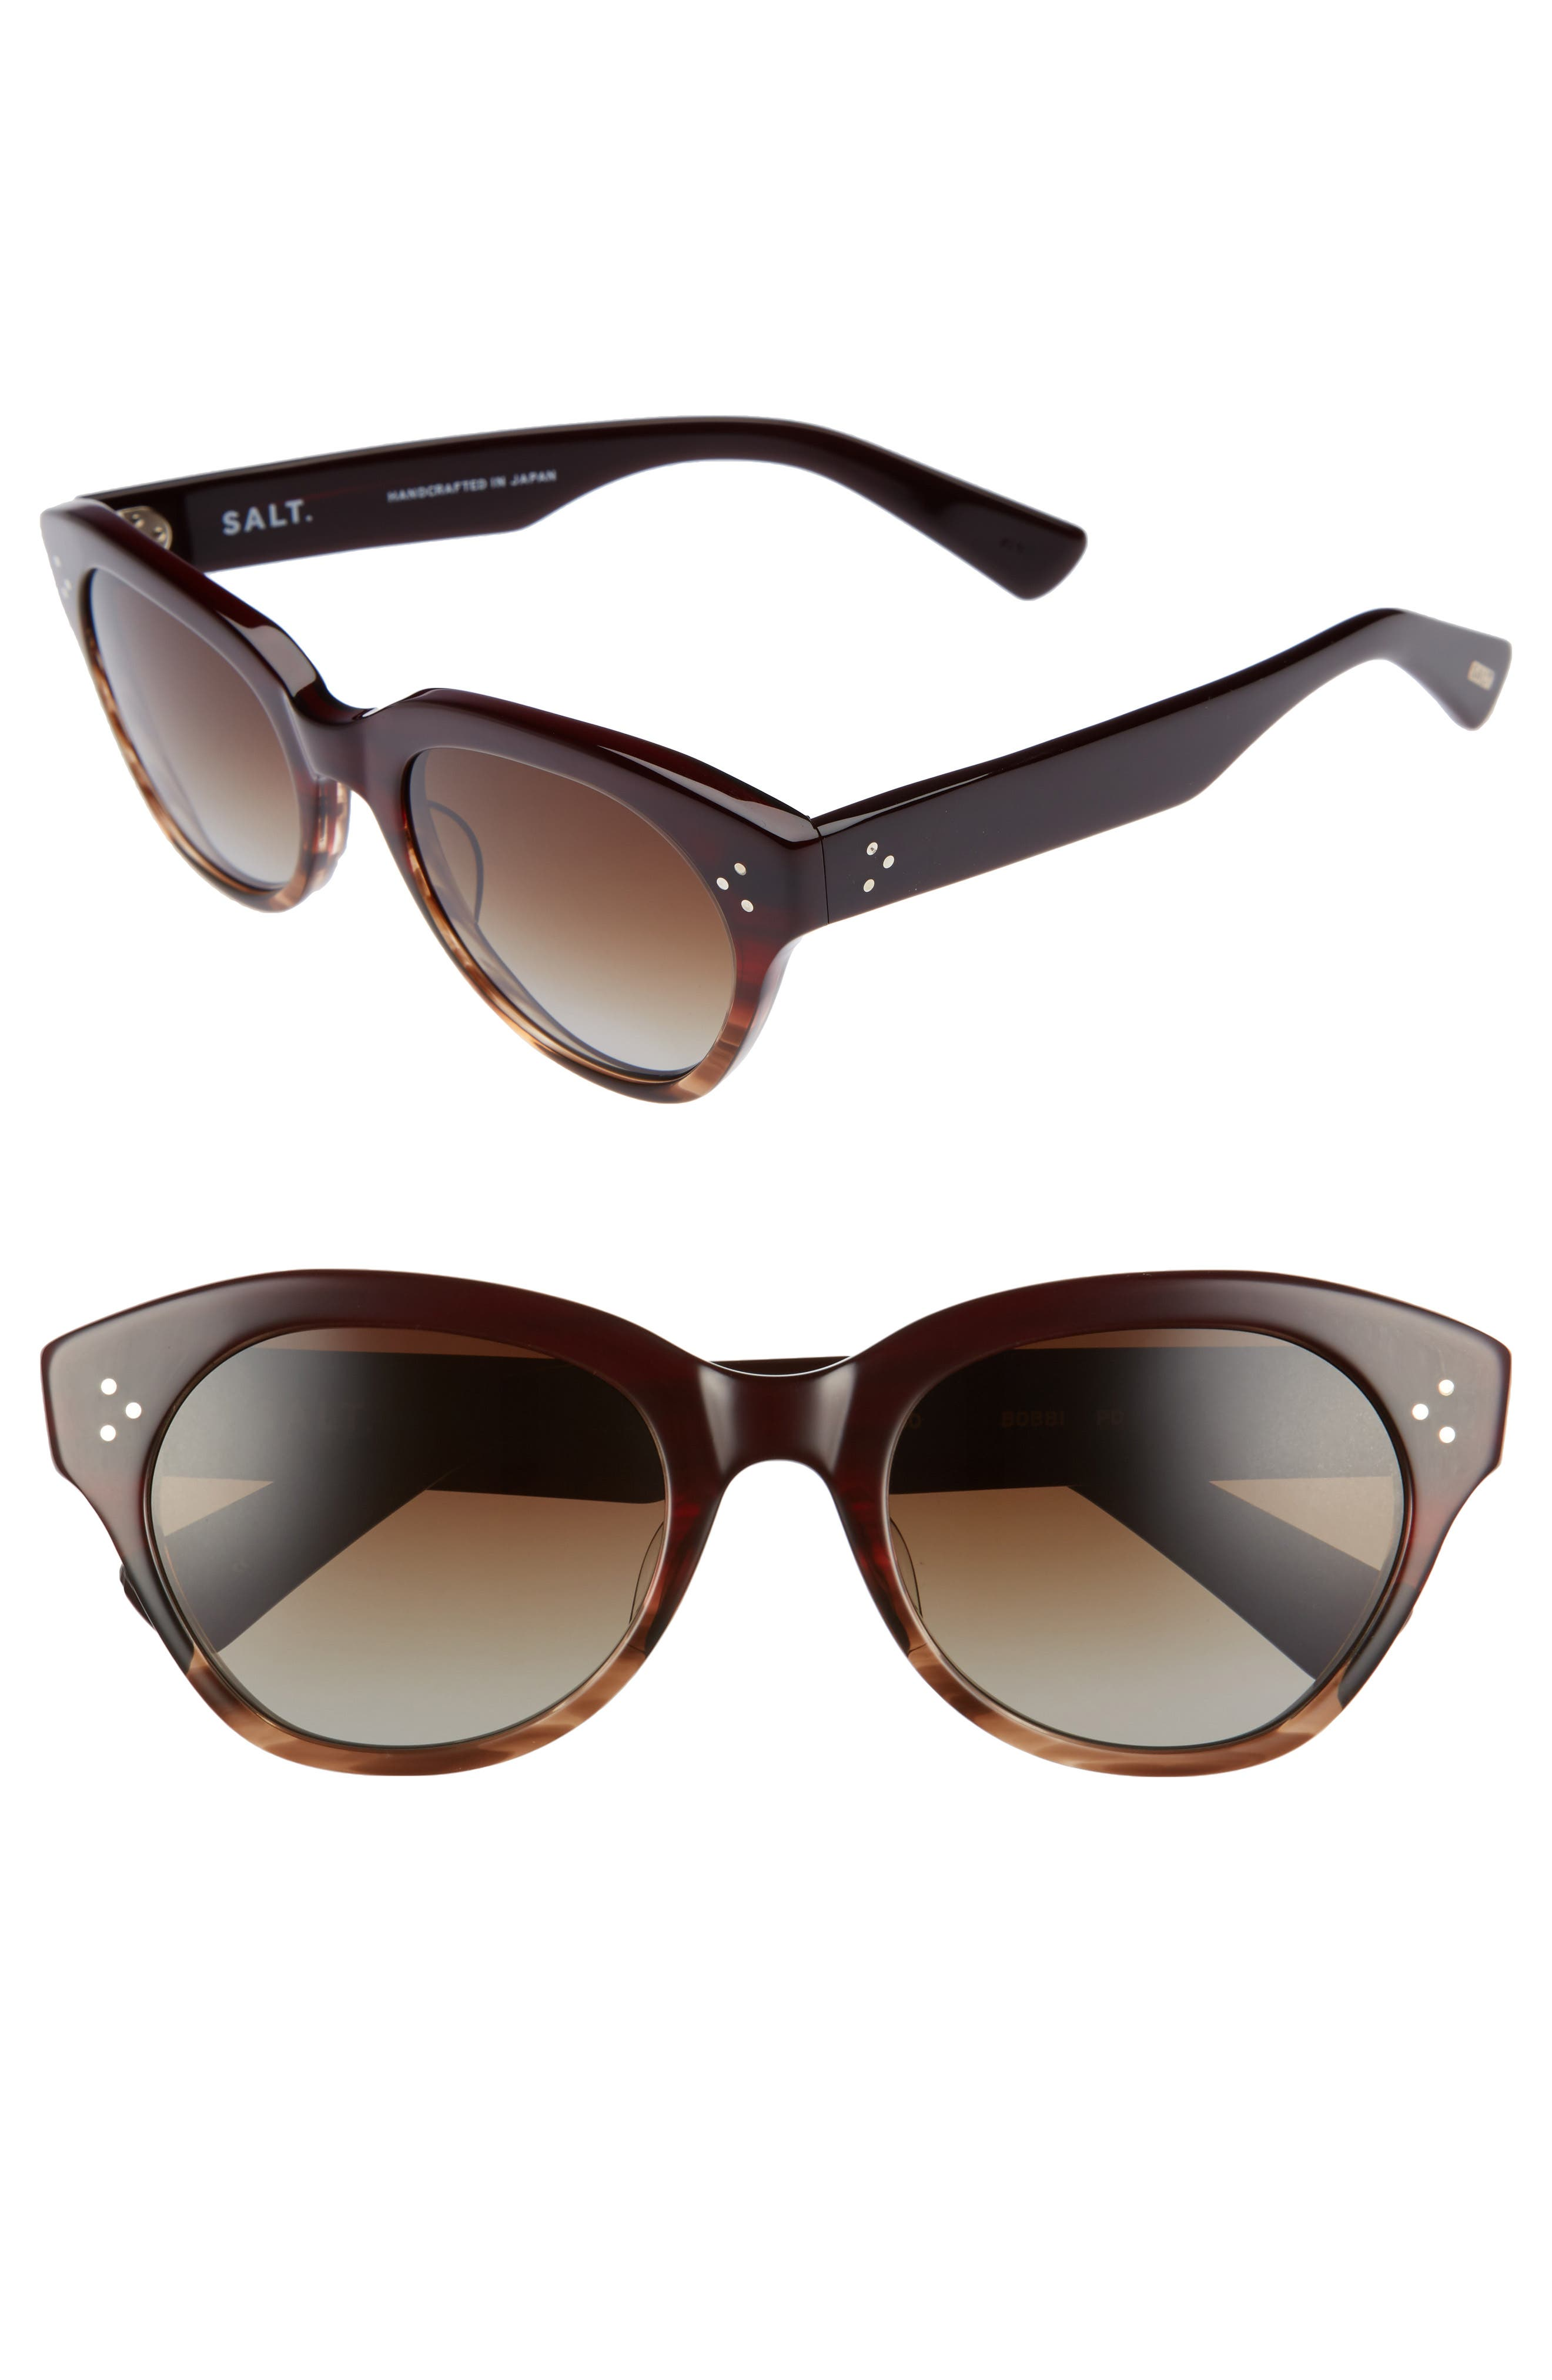 Main Image - Salt 53mm Cat Eye Polarized Sunglasses